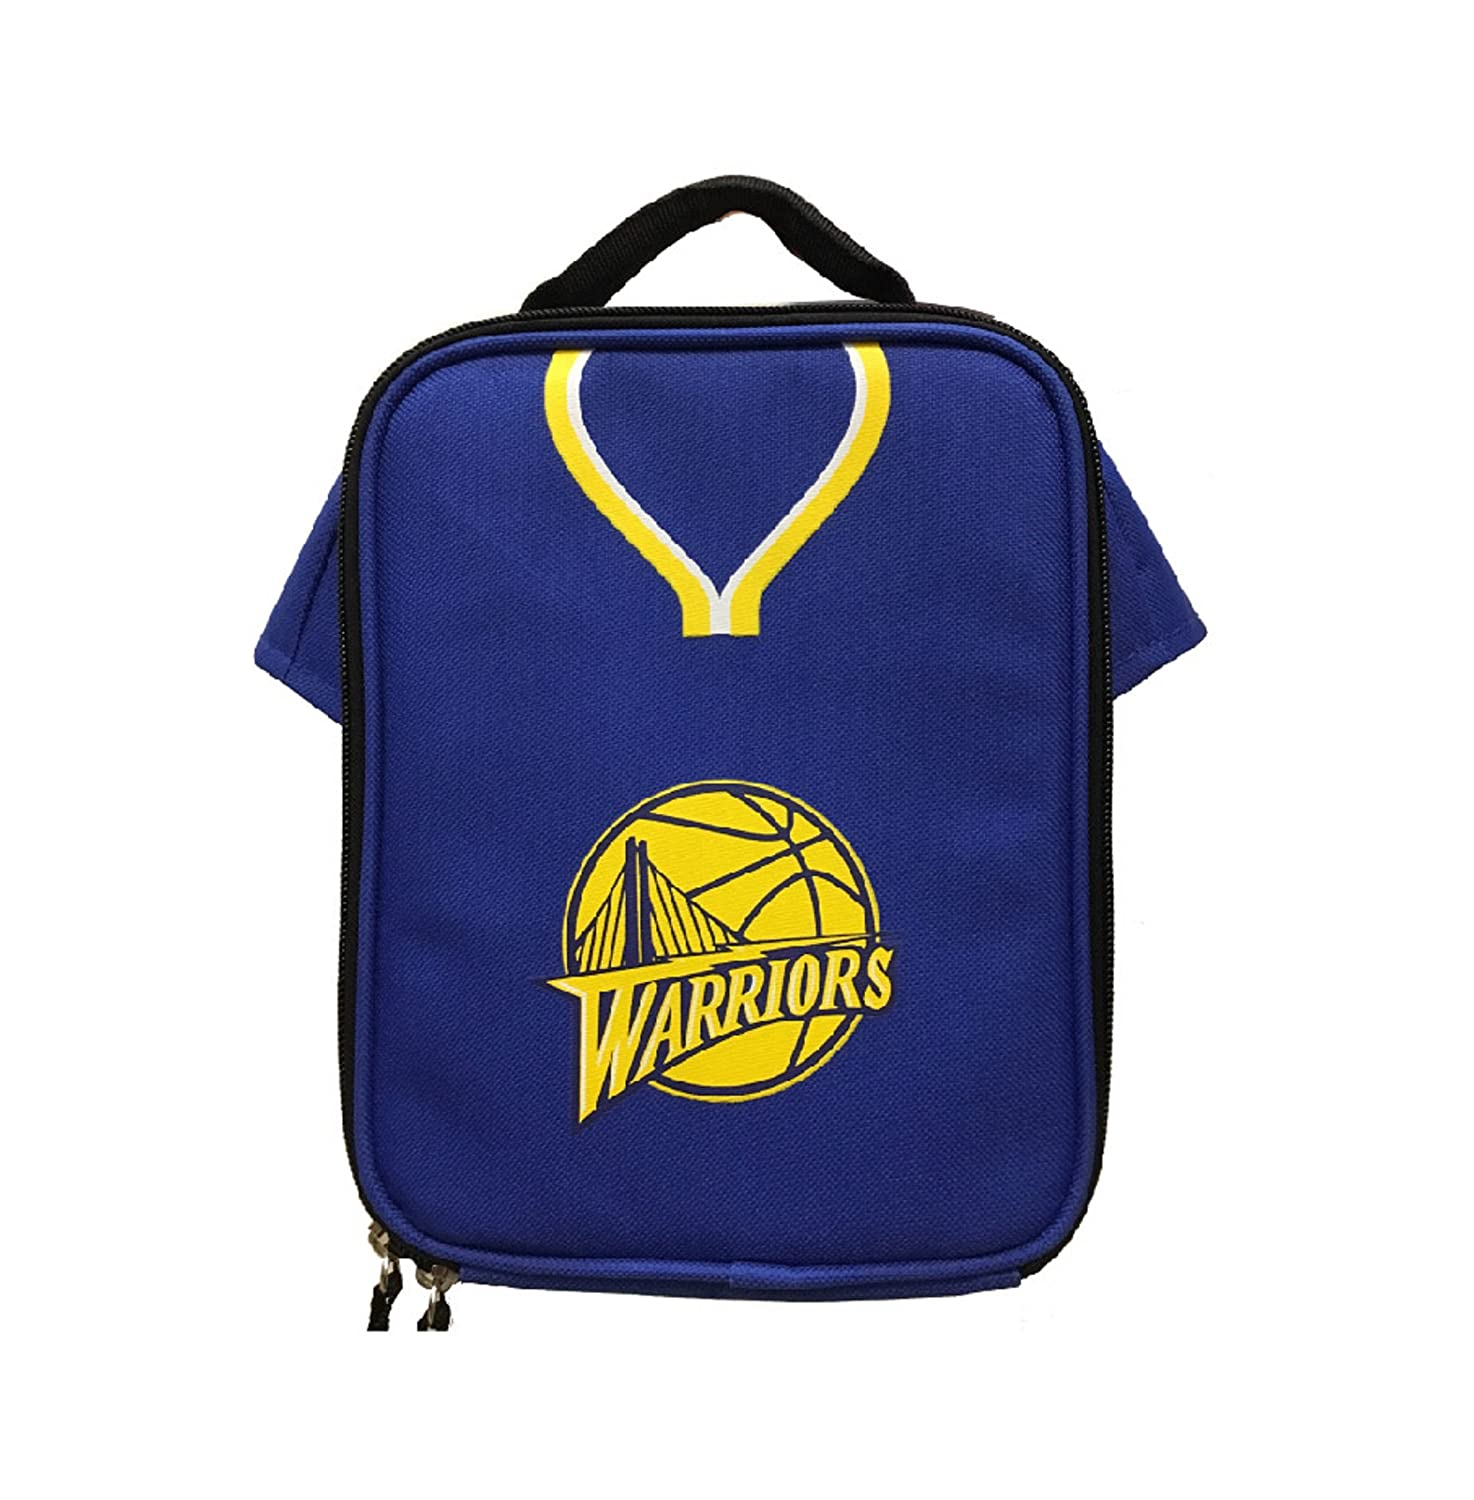 UNK Fanatics Steph Curry Kids Basketball Premium Quality Gift Set with Backpack